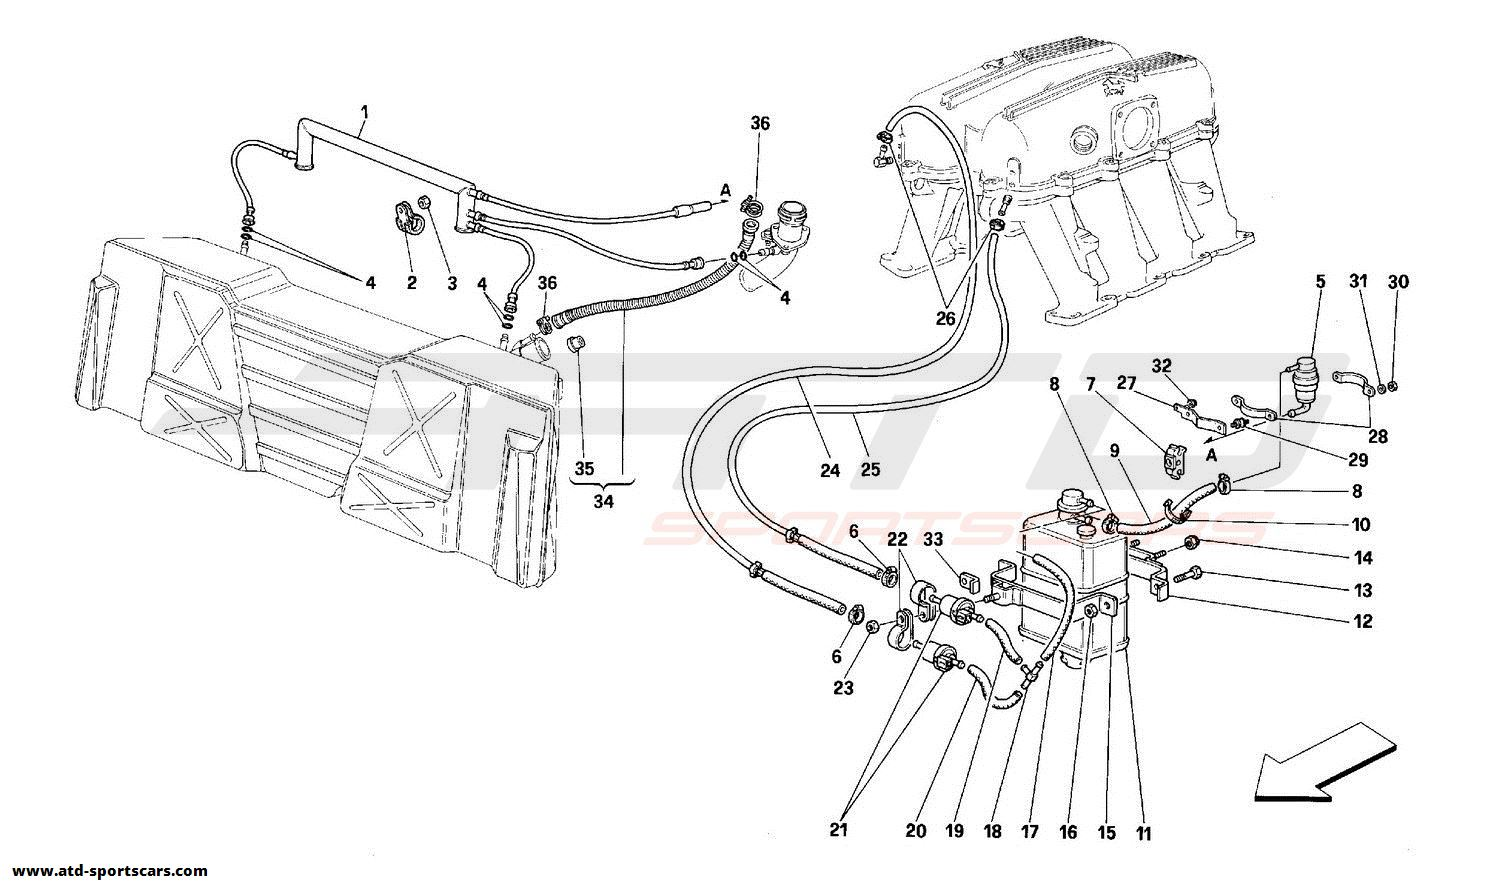 Ferrari 348 ANTIEVAPORATION DEVICE